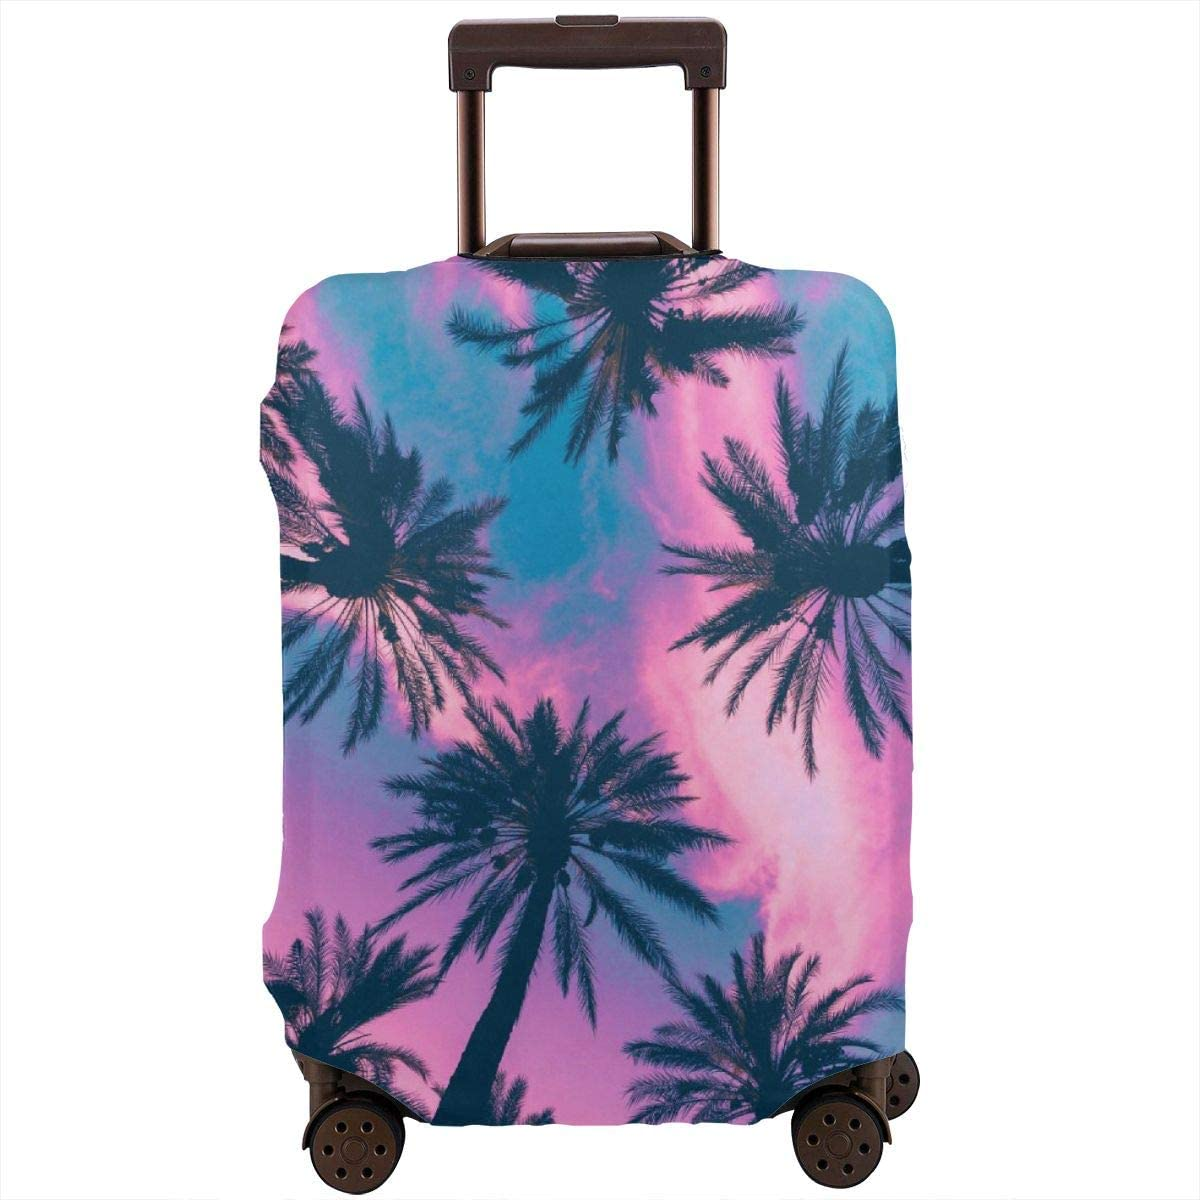 Travel Luggage Cover Spandex Suitcase Protector Washable Baggage Protective Covers Pink Palm Trees Sea Dusk Fits 18 To 32 Inch